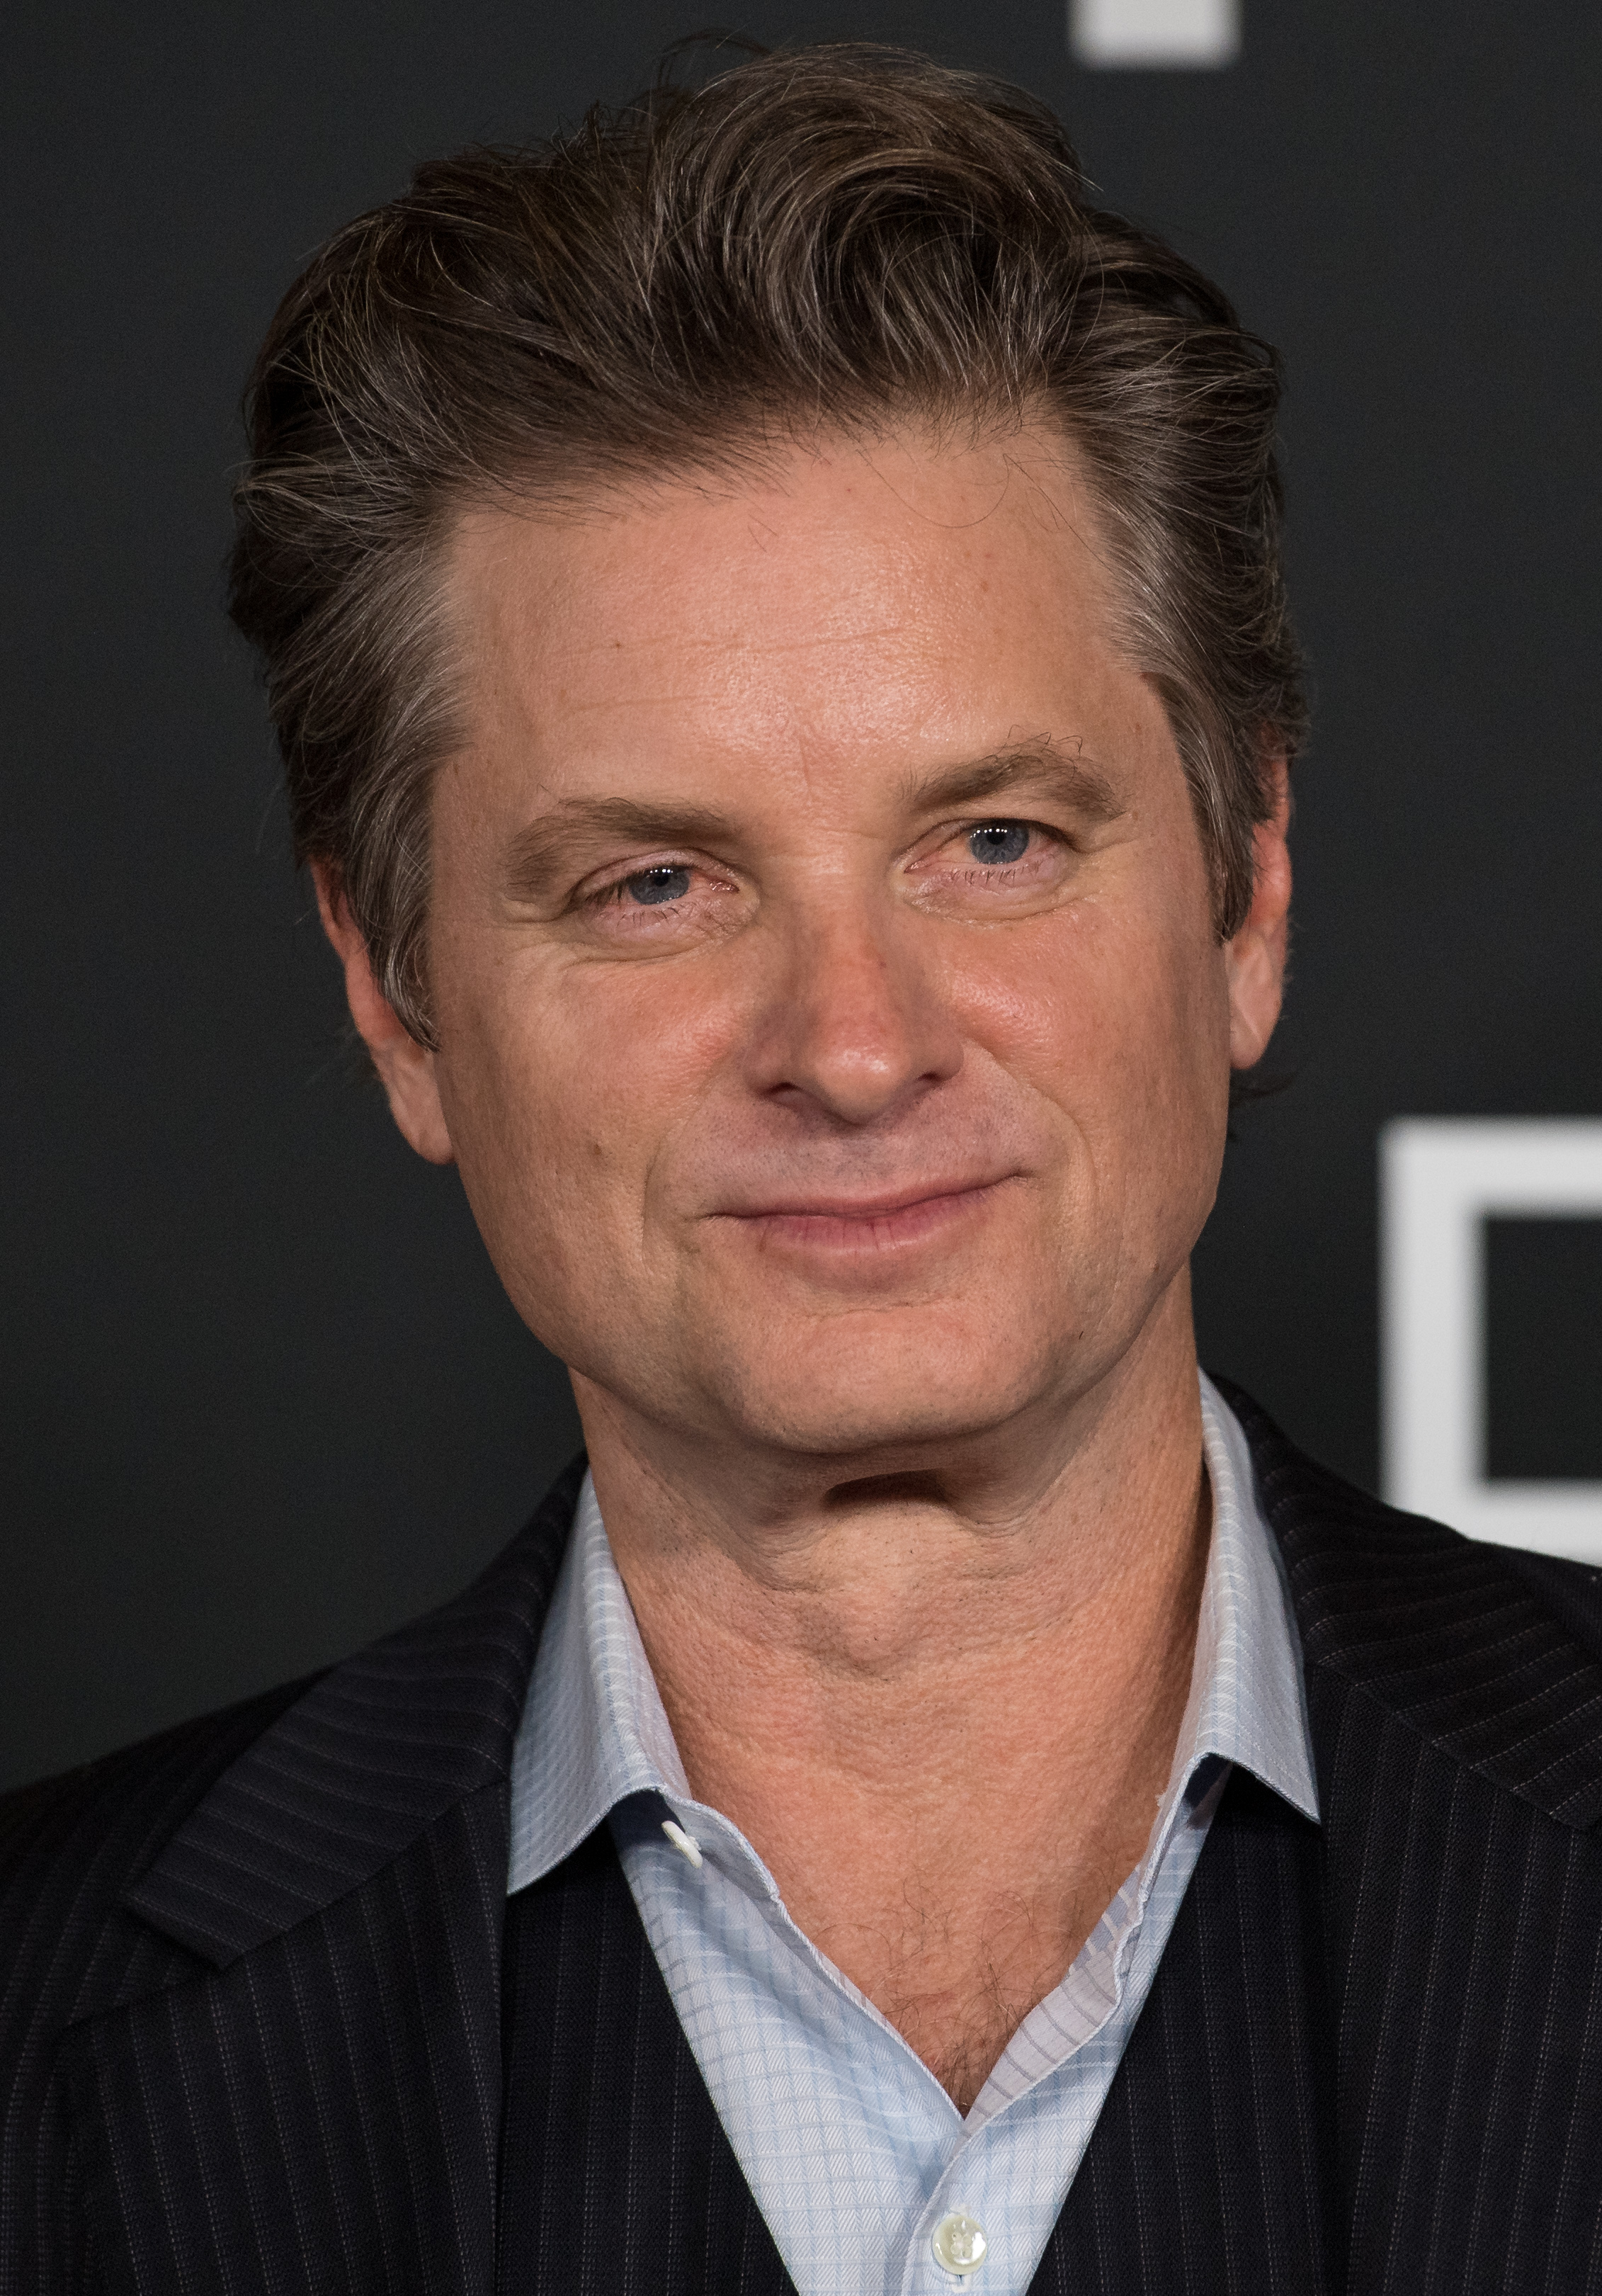 The 49-year old son of father Frank Whigham and mother Beth Whigham Shea Whigham in 2018 photo. Shea Whigham earned a  million dollar salary - leaving the net worth at 8 million in 2018